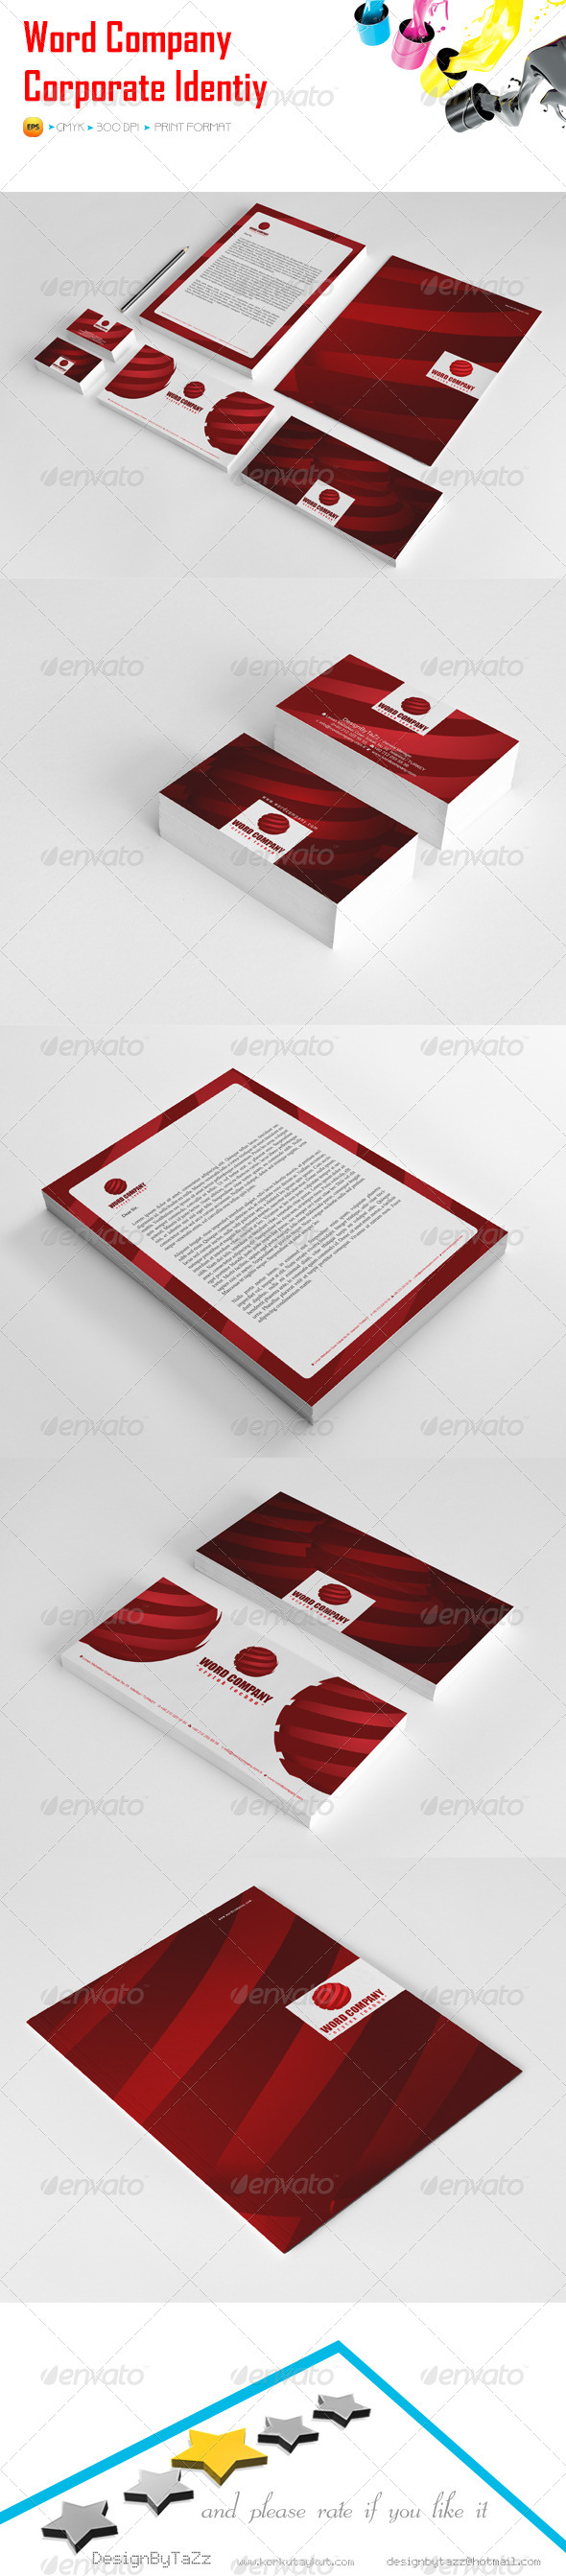 GraphicRiver Word Company Corporate Identity Package 5479117